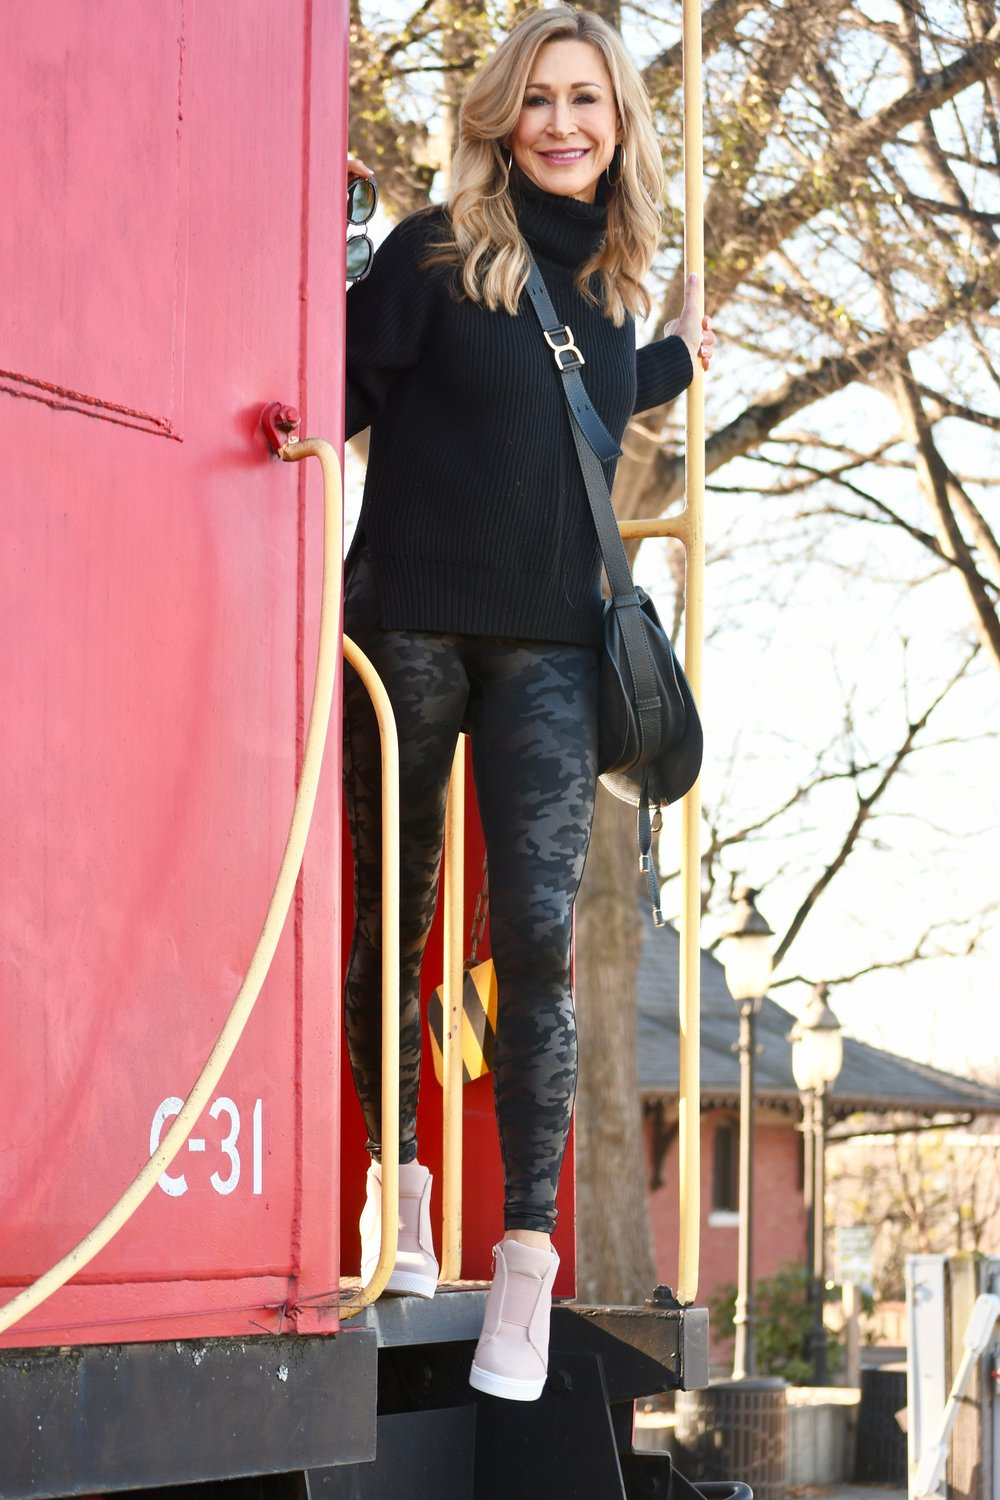 Spanx camo leggings with Vici sneakers and Chloe Bag